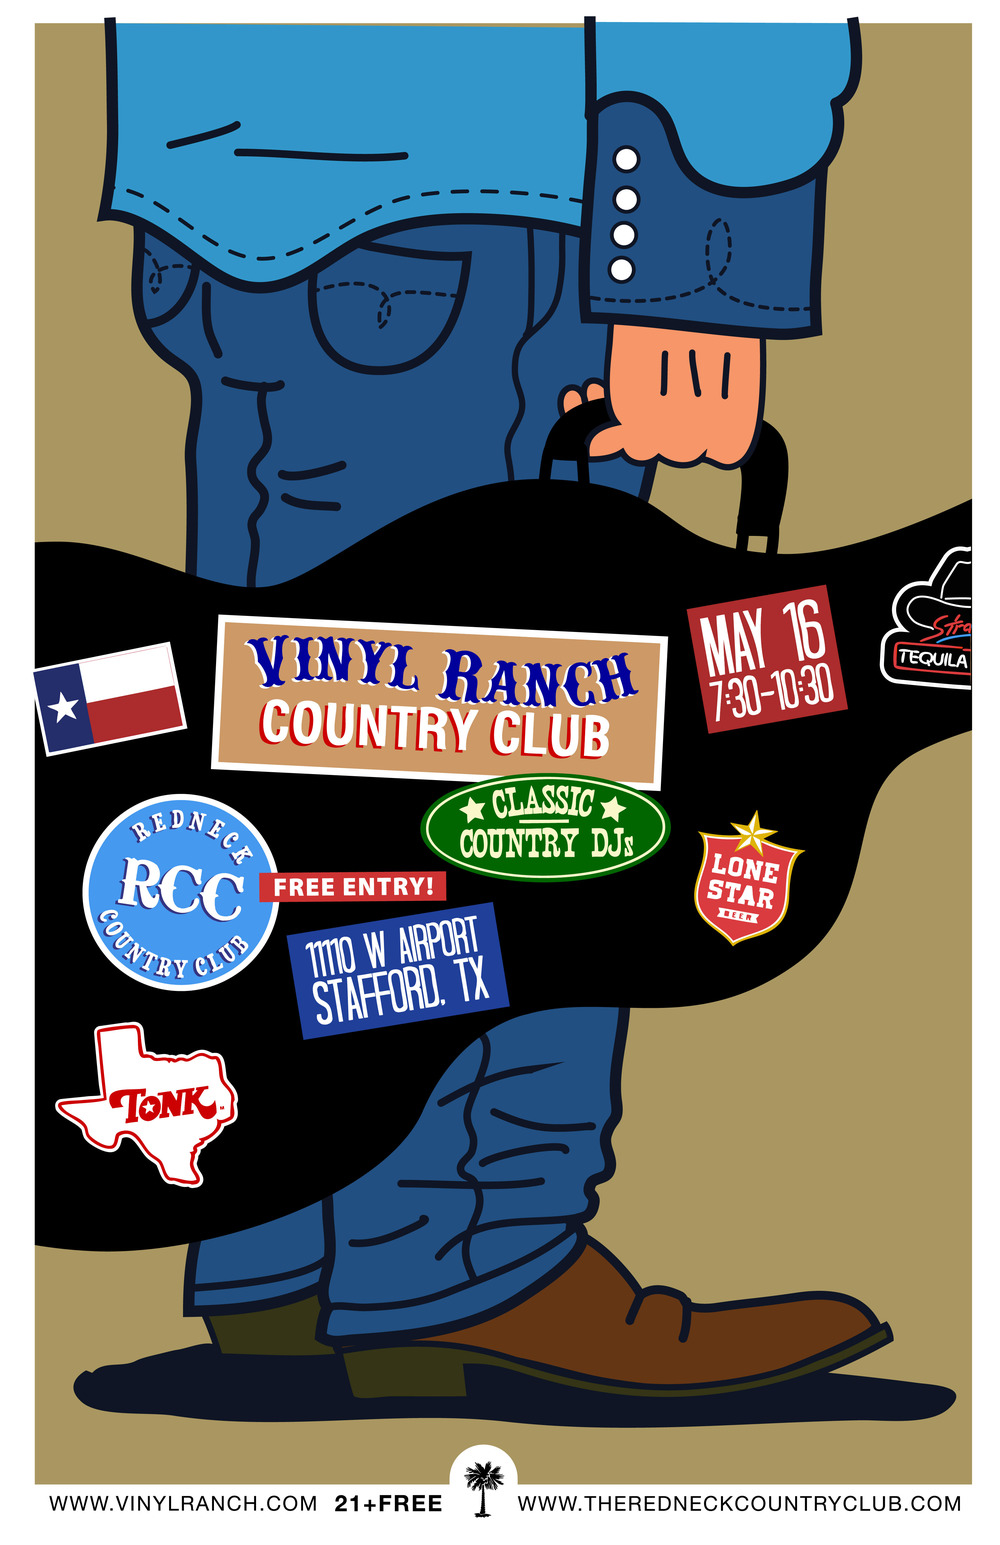 Vinyl_Ranch_May16_11x17.jpg